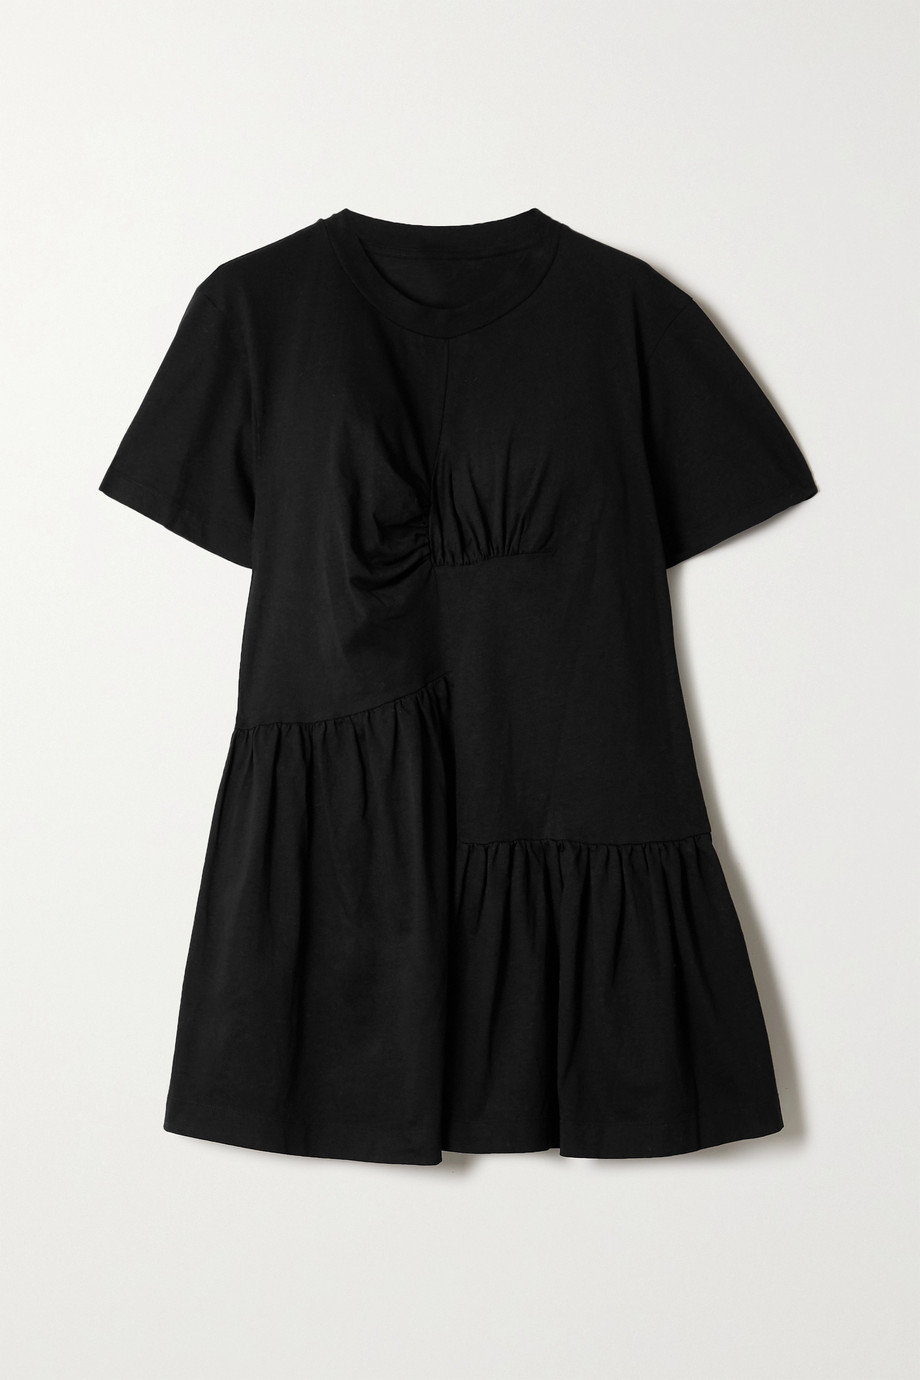 MARQUES' ALMEIDA + NET SUSTAIN ReM'Ade By Marques' Almeida oversized cotton-jersey mini dress